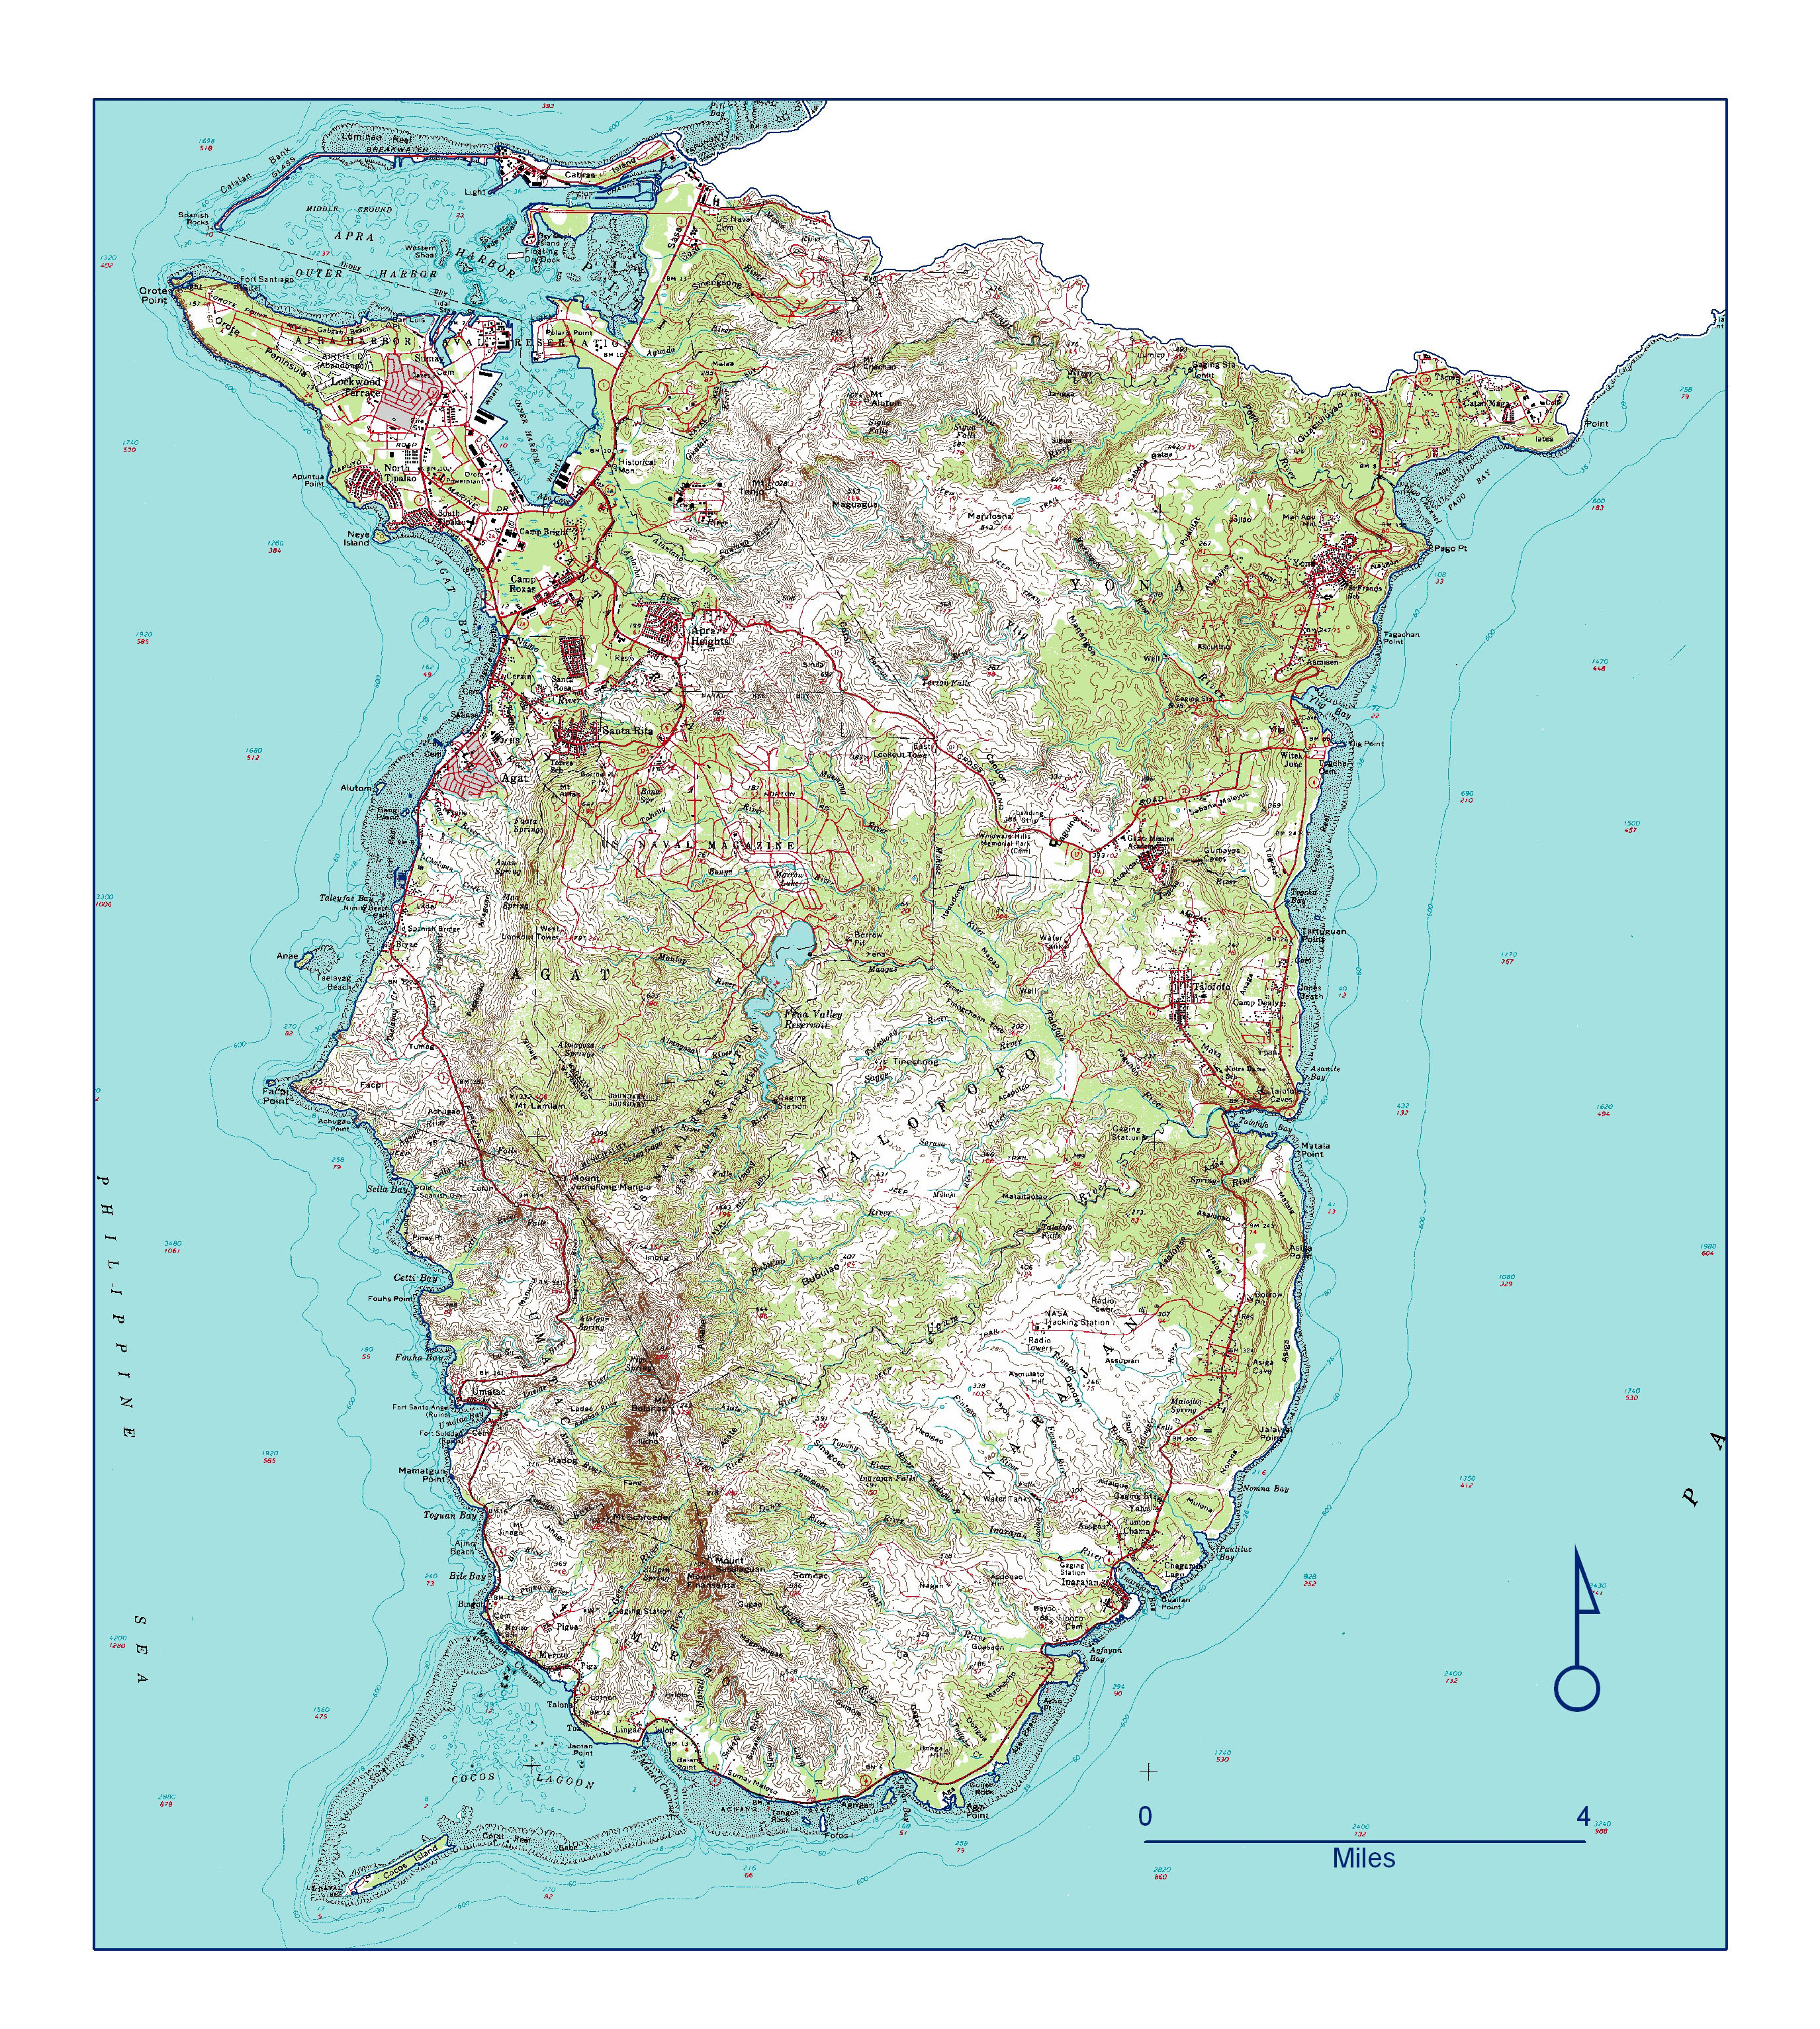 Large Detailed Topographical Map Of Southern Guam Guam Oceania - Guam world map